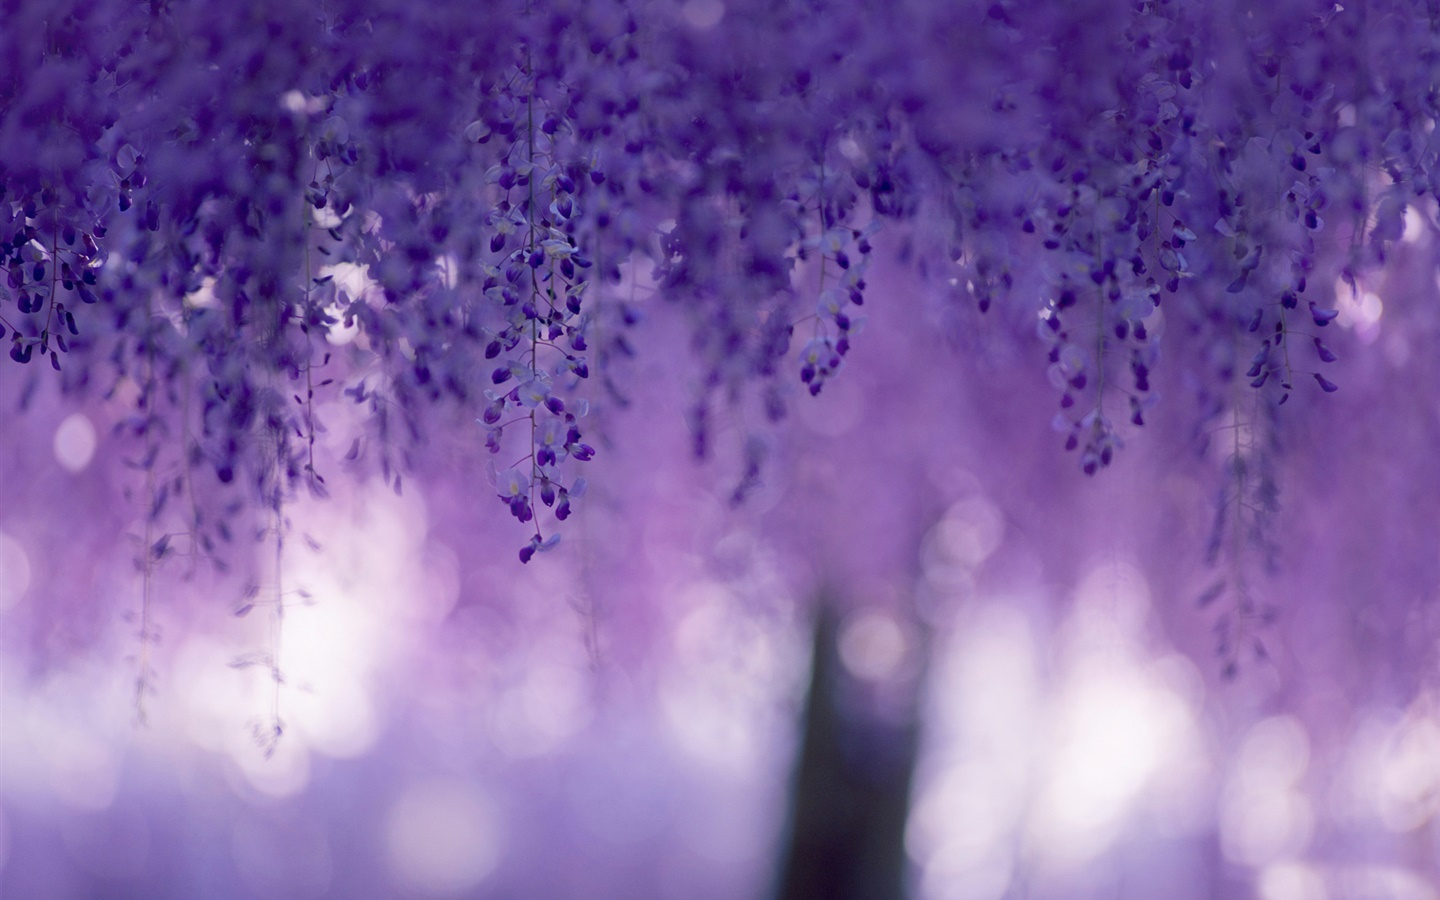 Wisteria, purple flowers, curtains 1440x900 wallpaper